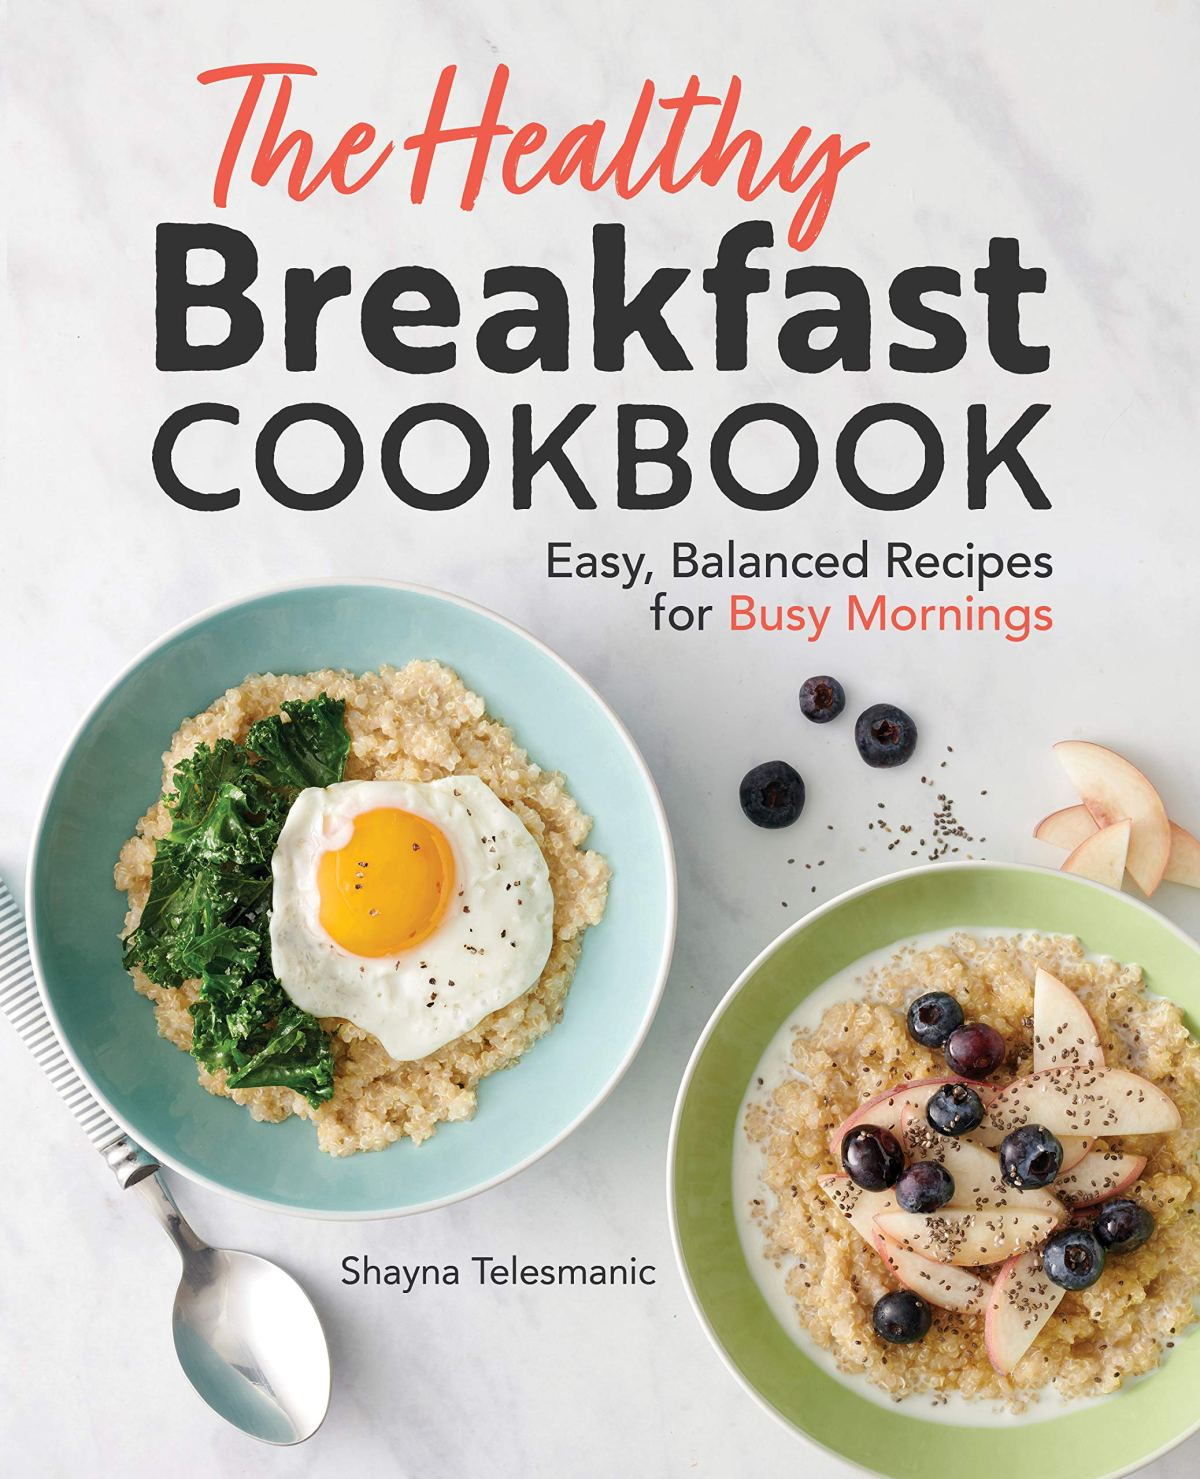 The Healthy Breakfast Cookbook: Easy, Balanced Recipes for Busy Mornings 1